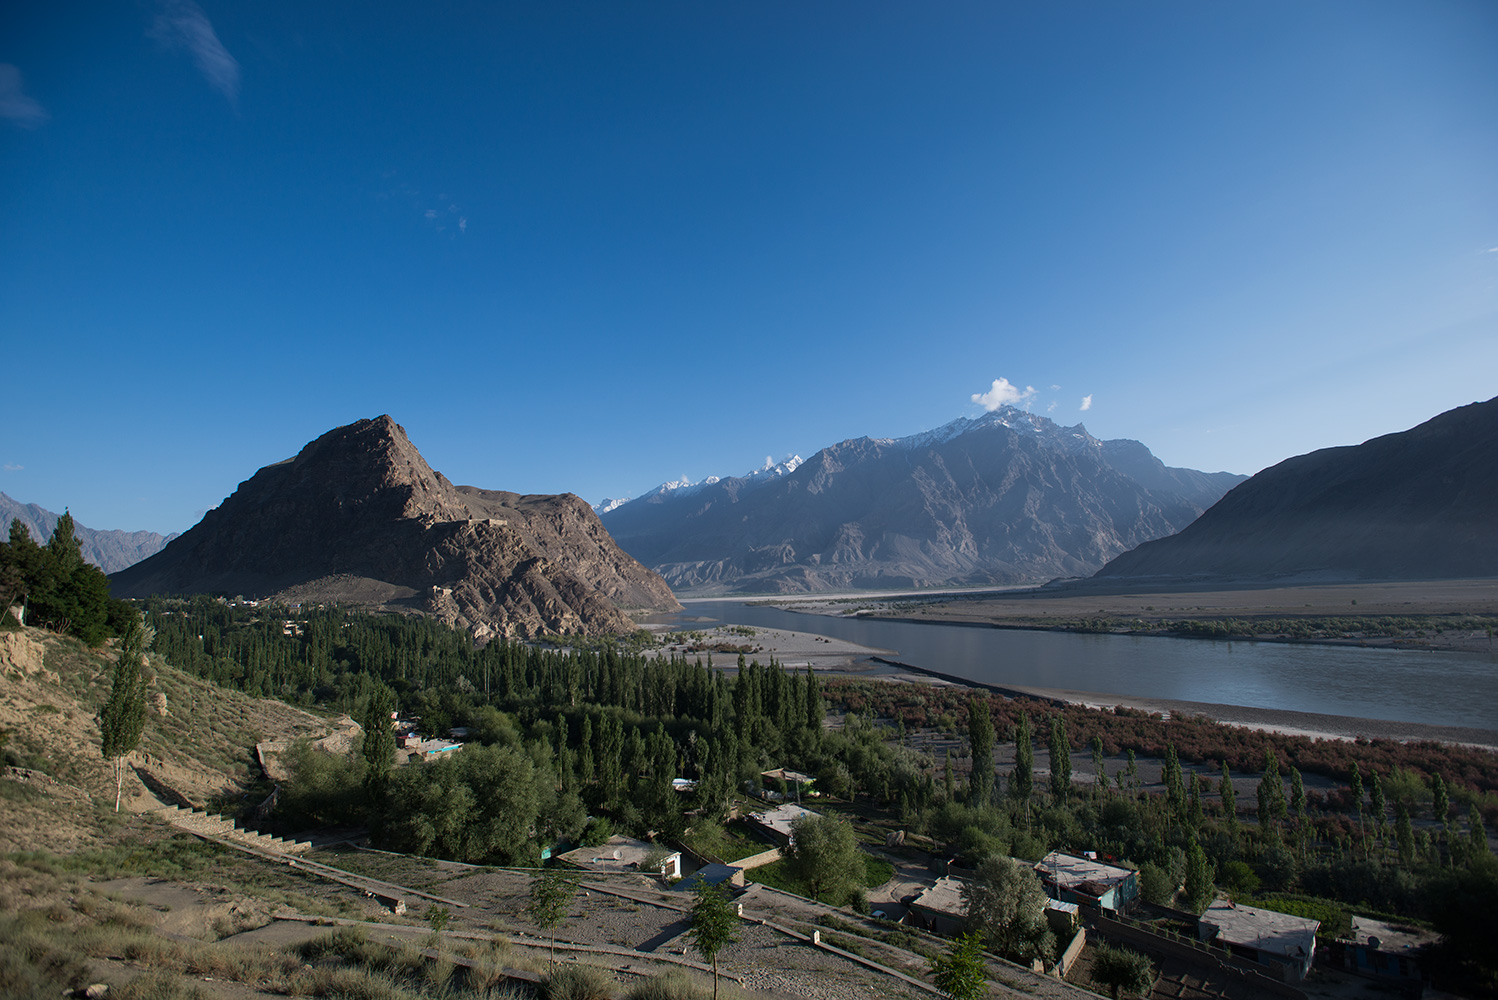 That view! From the terrace at the PTDC K2 Motel. Such a special place